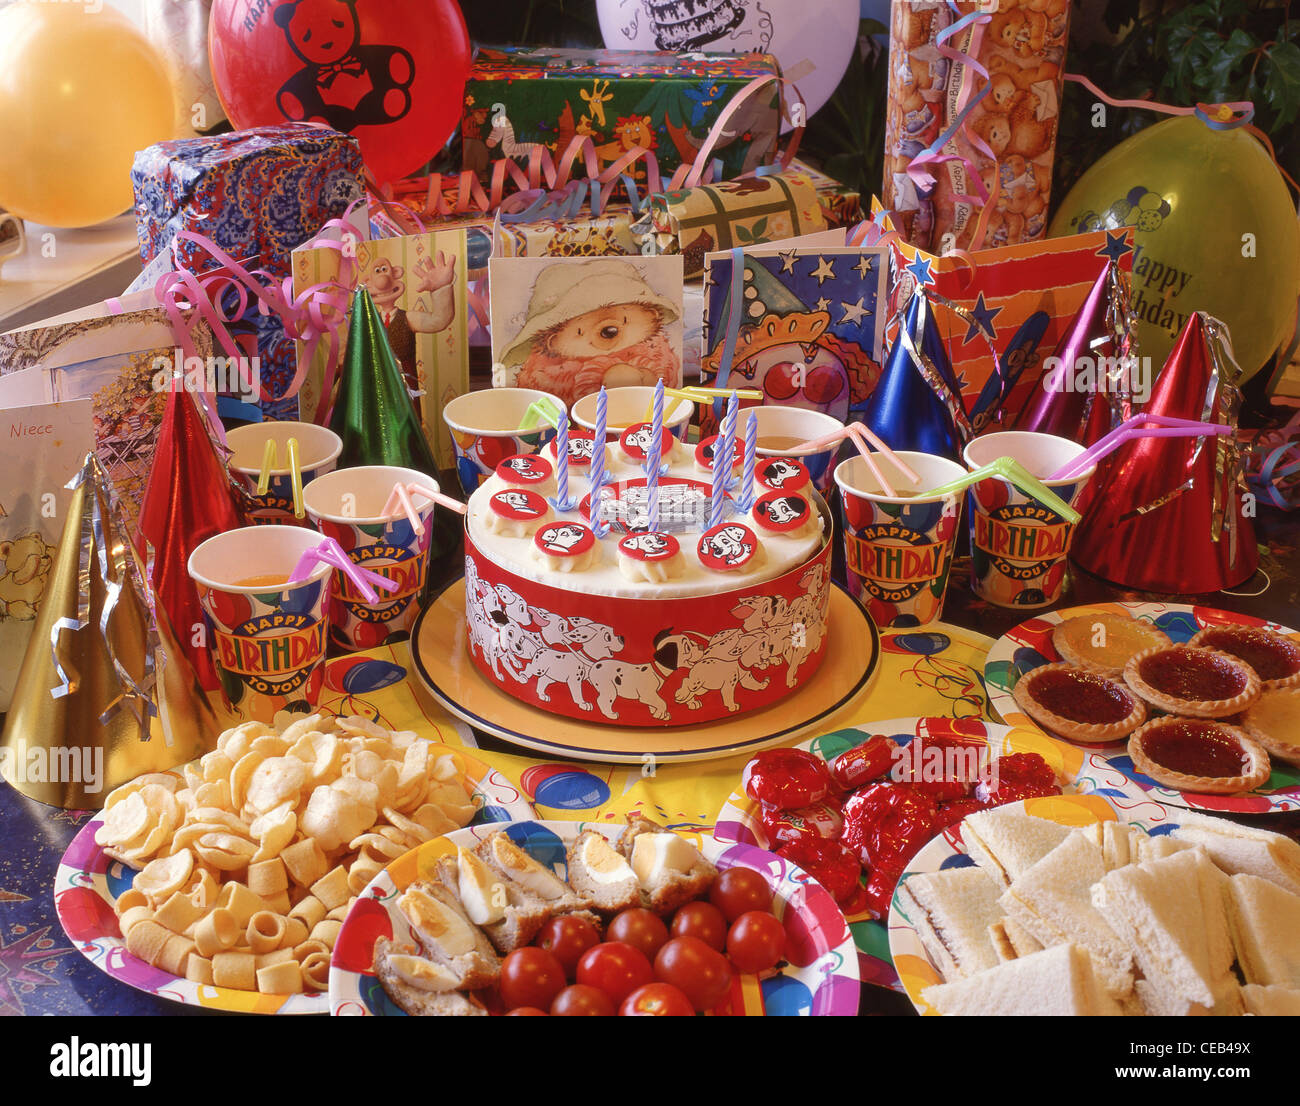 Children's Birthday Party Food Spread, Berkshire, England